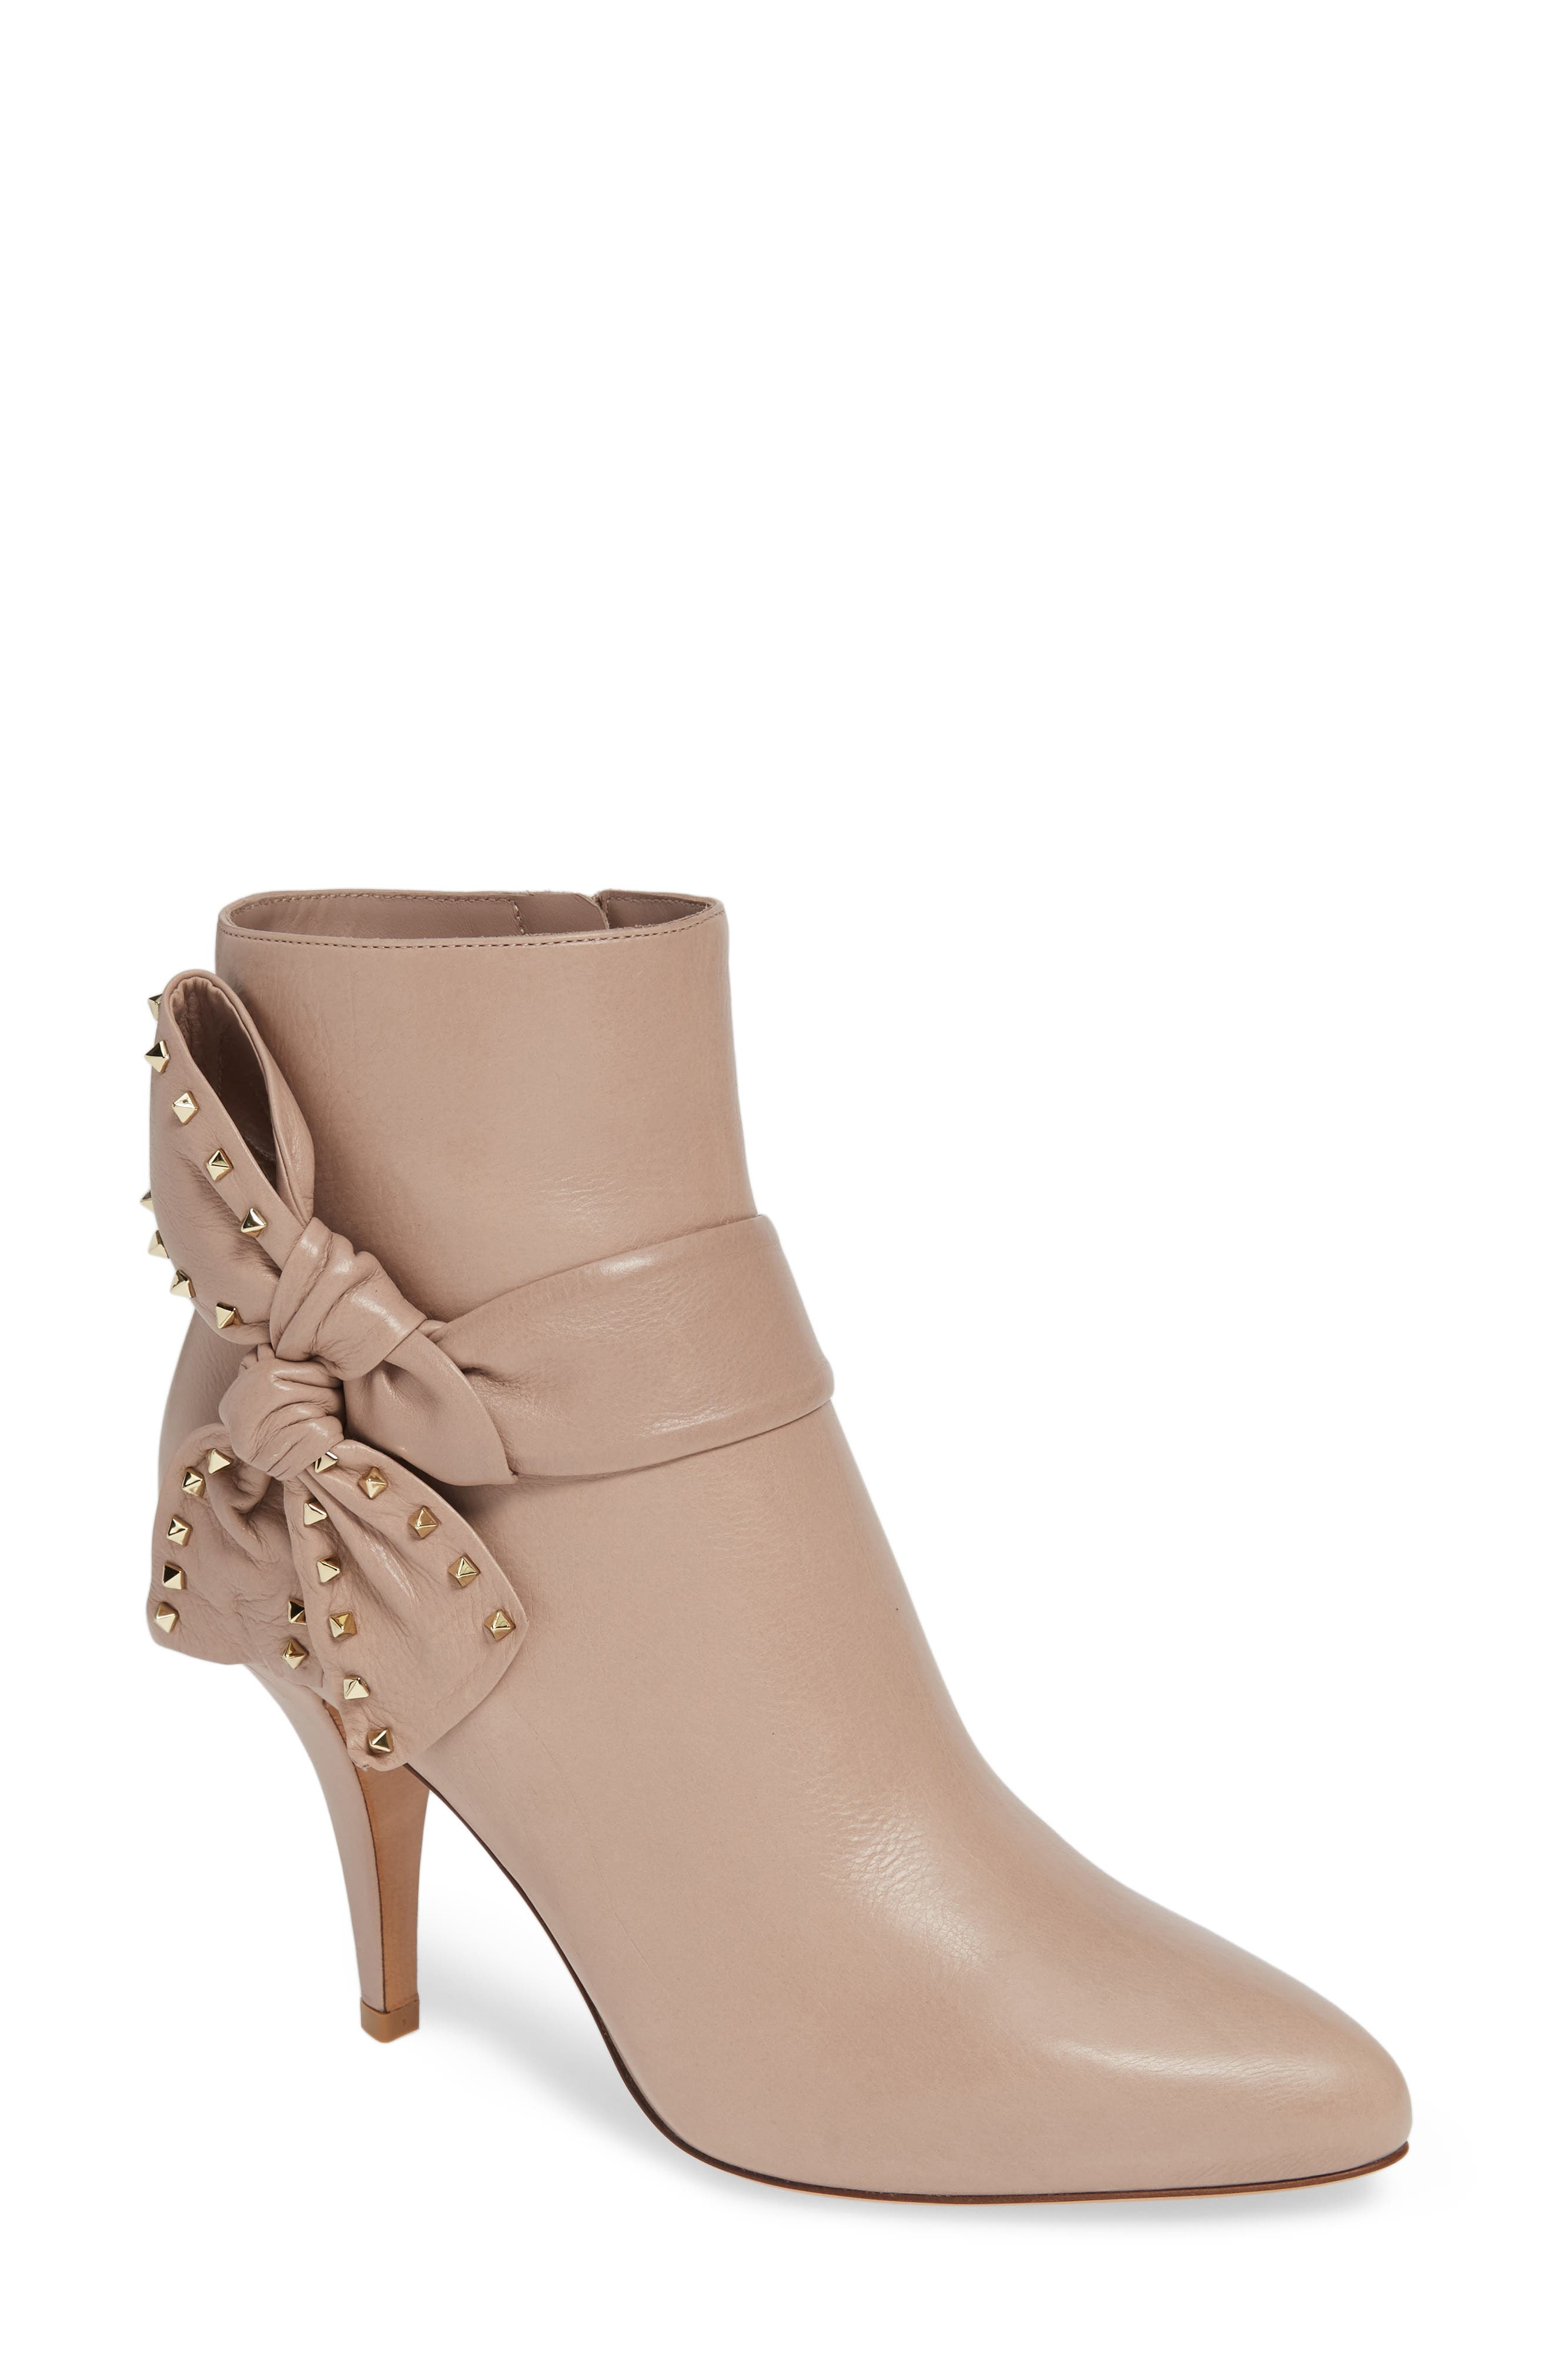 Studded Bow Ankle Bootie,                             Main thumbnail 1, color,                             250